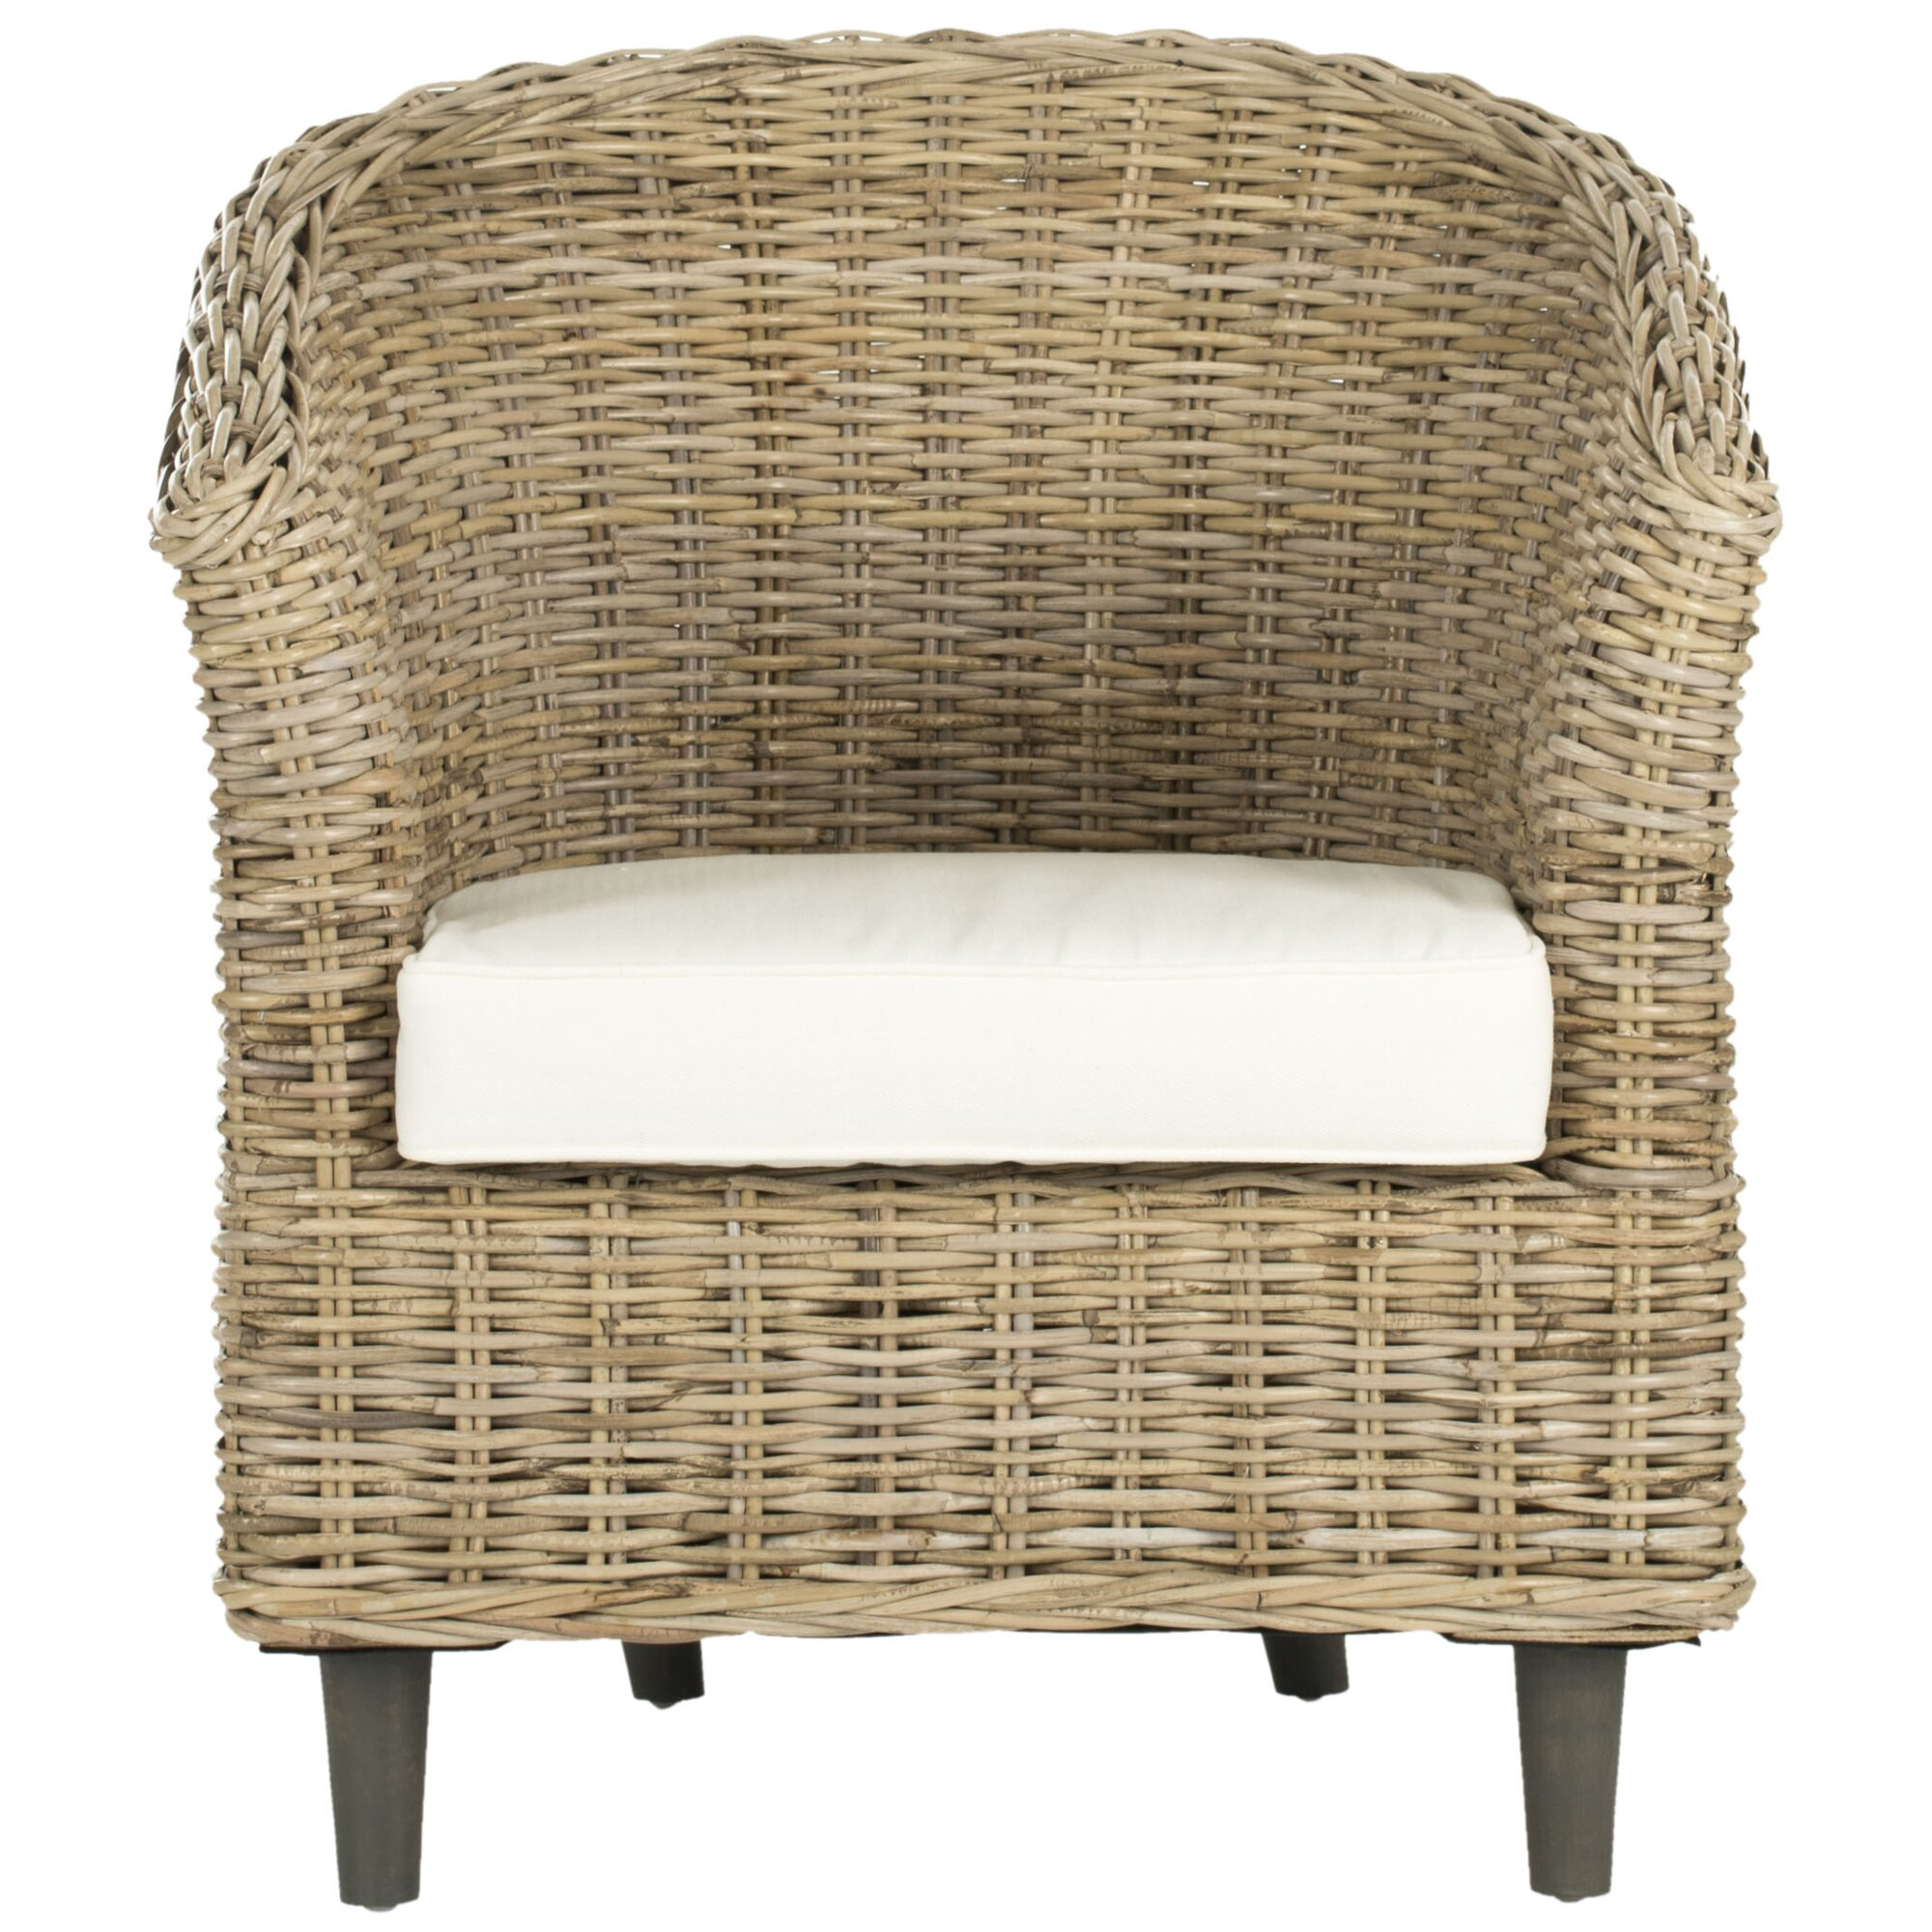 Wingback Wicker Chair Fabulous Patio Wicker Wing Back Chair With